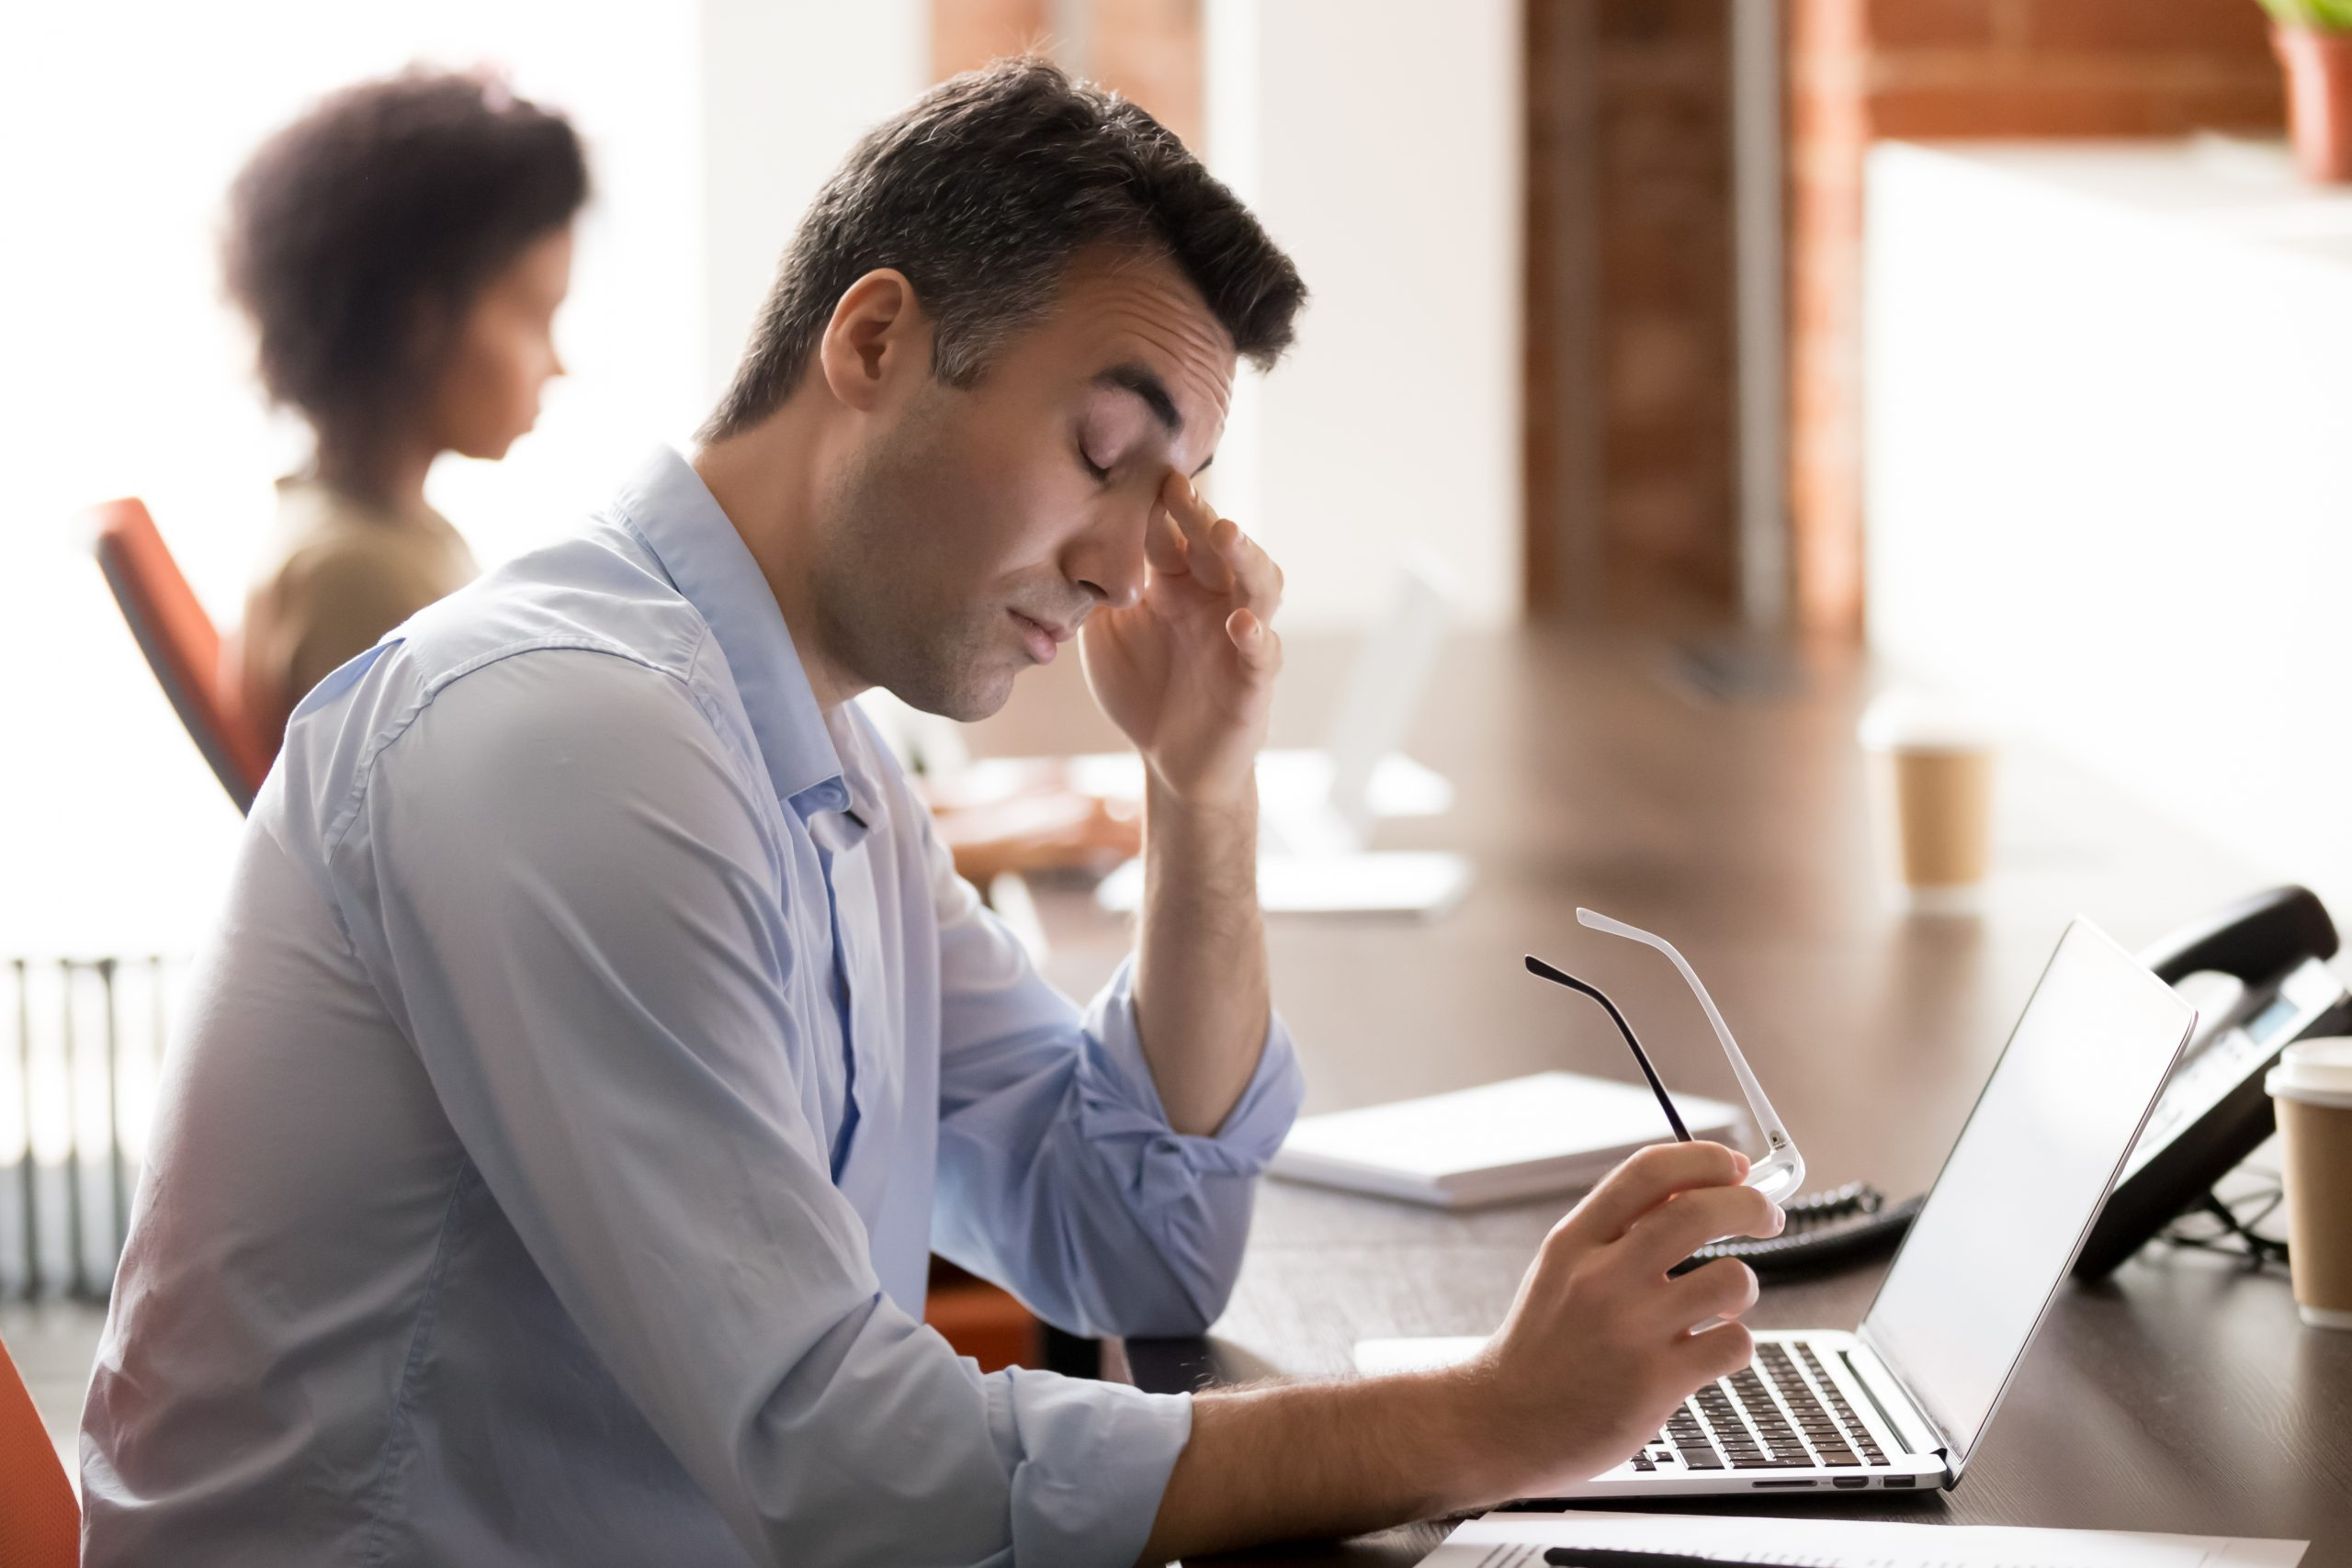 Is Home Working Causing Neck Discomfort?